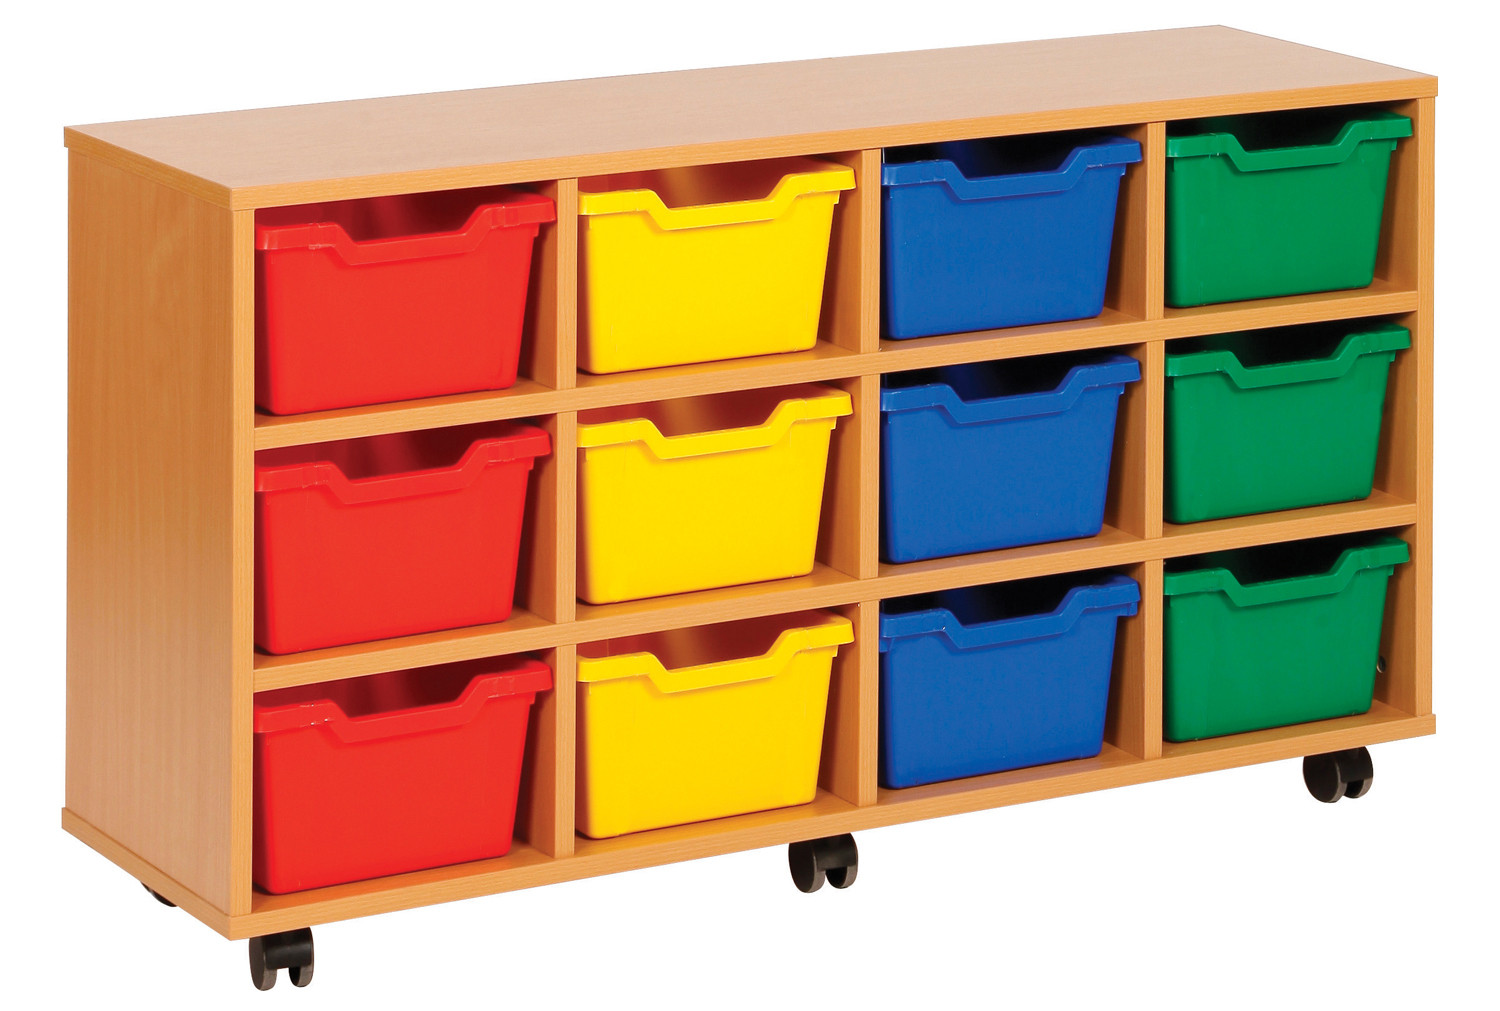 Cubby tray storage unit with 12 trays